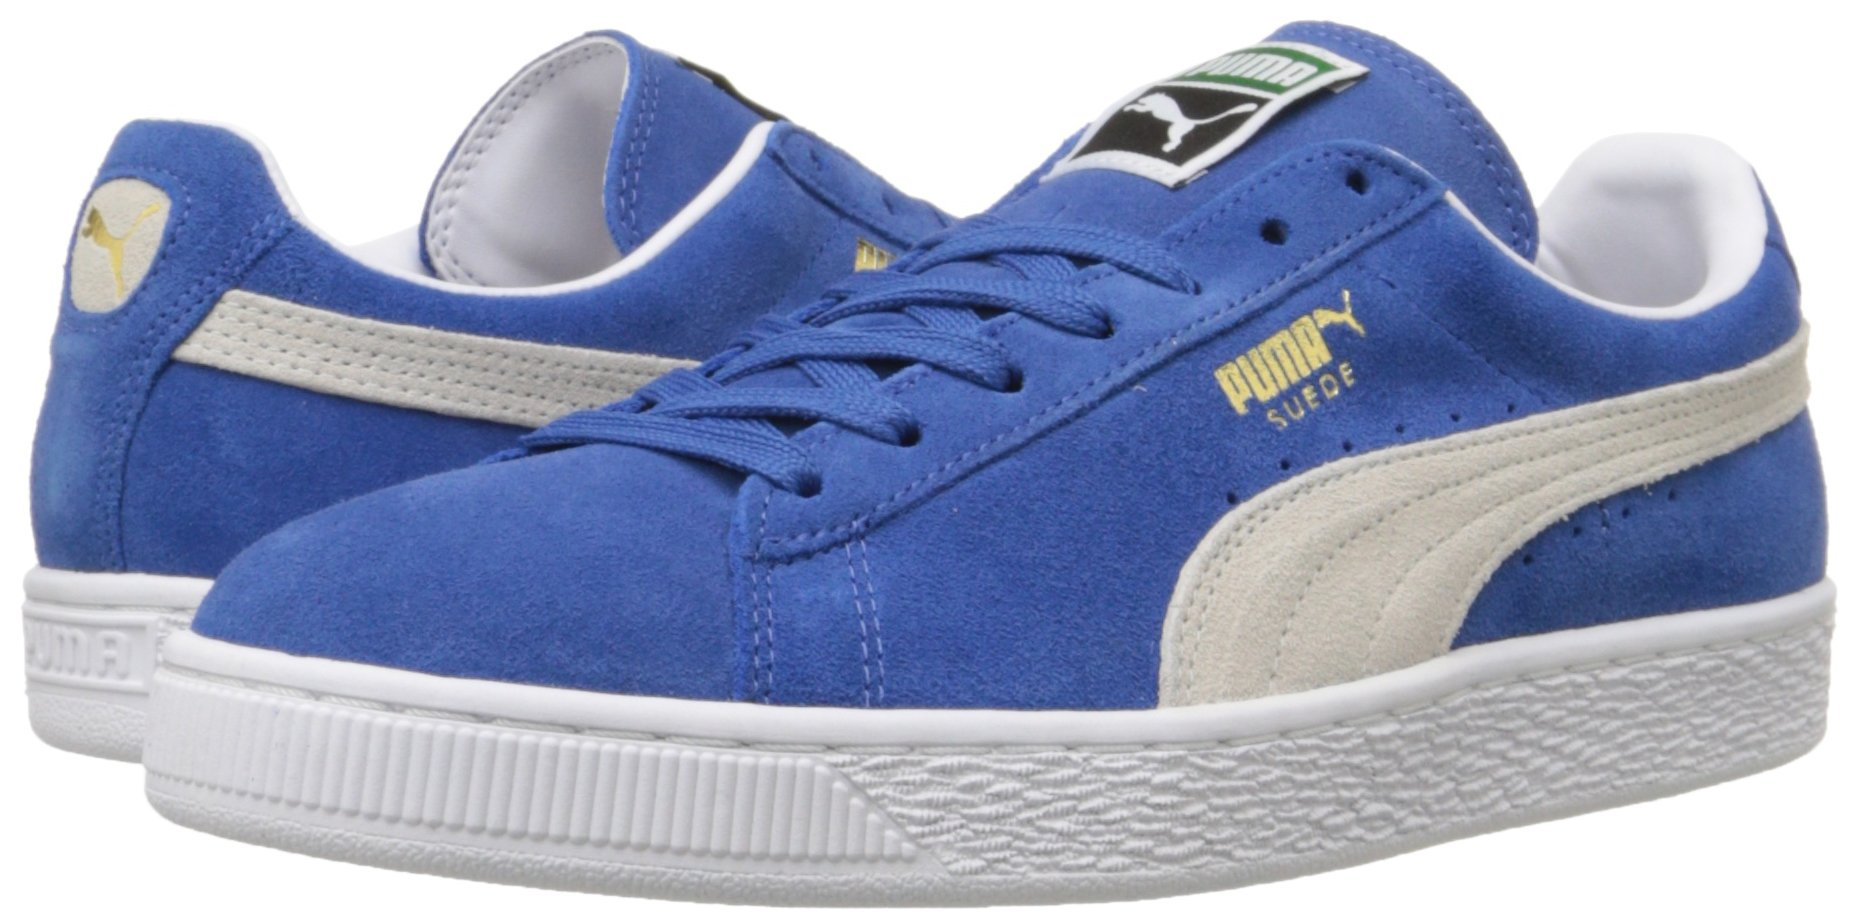 Suede Classic Sneakers Economical, stylish, and eye-catching shoes